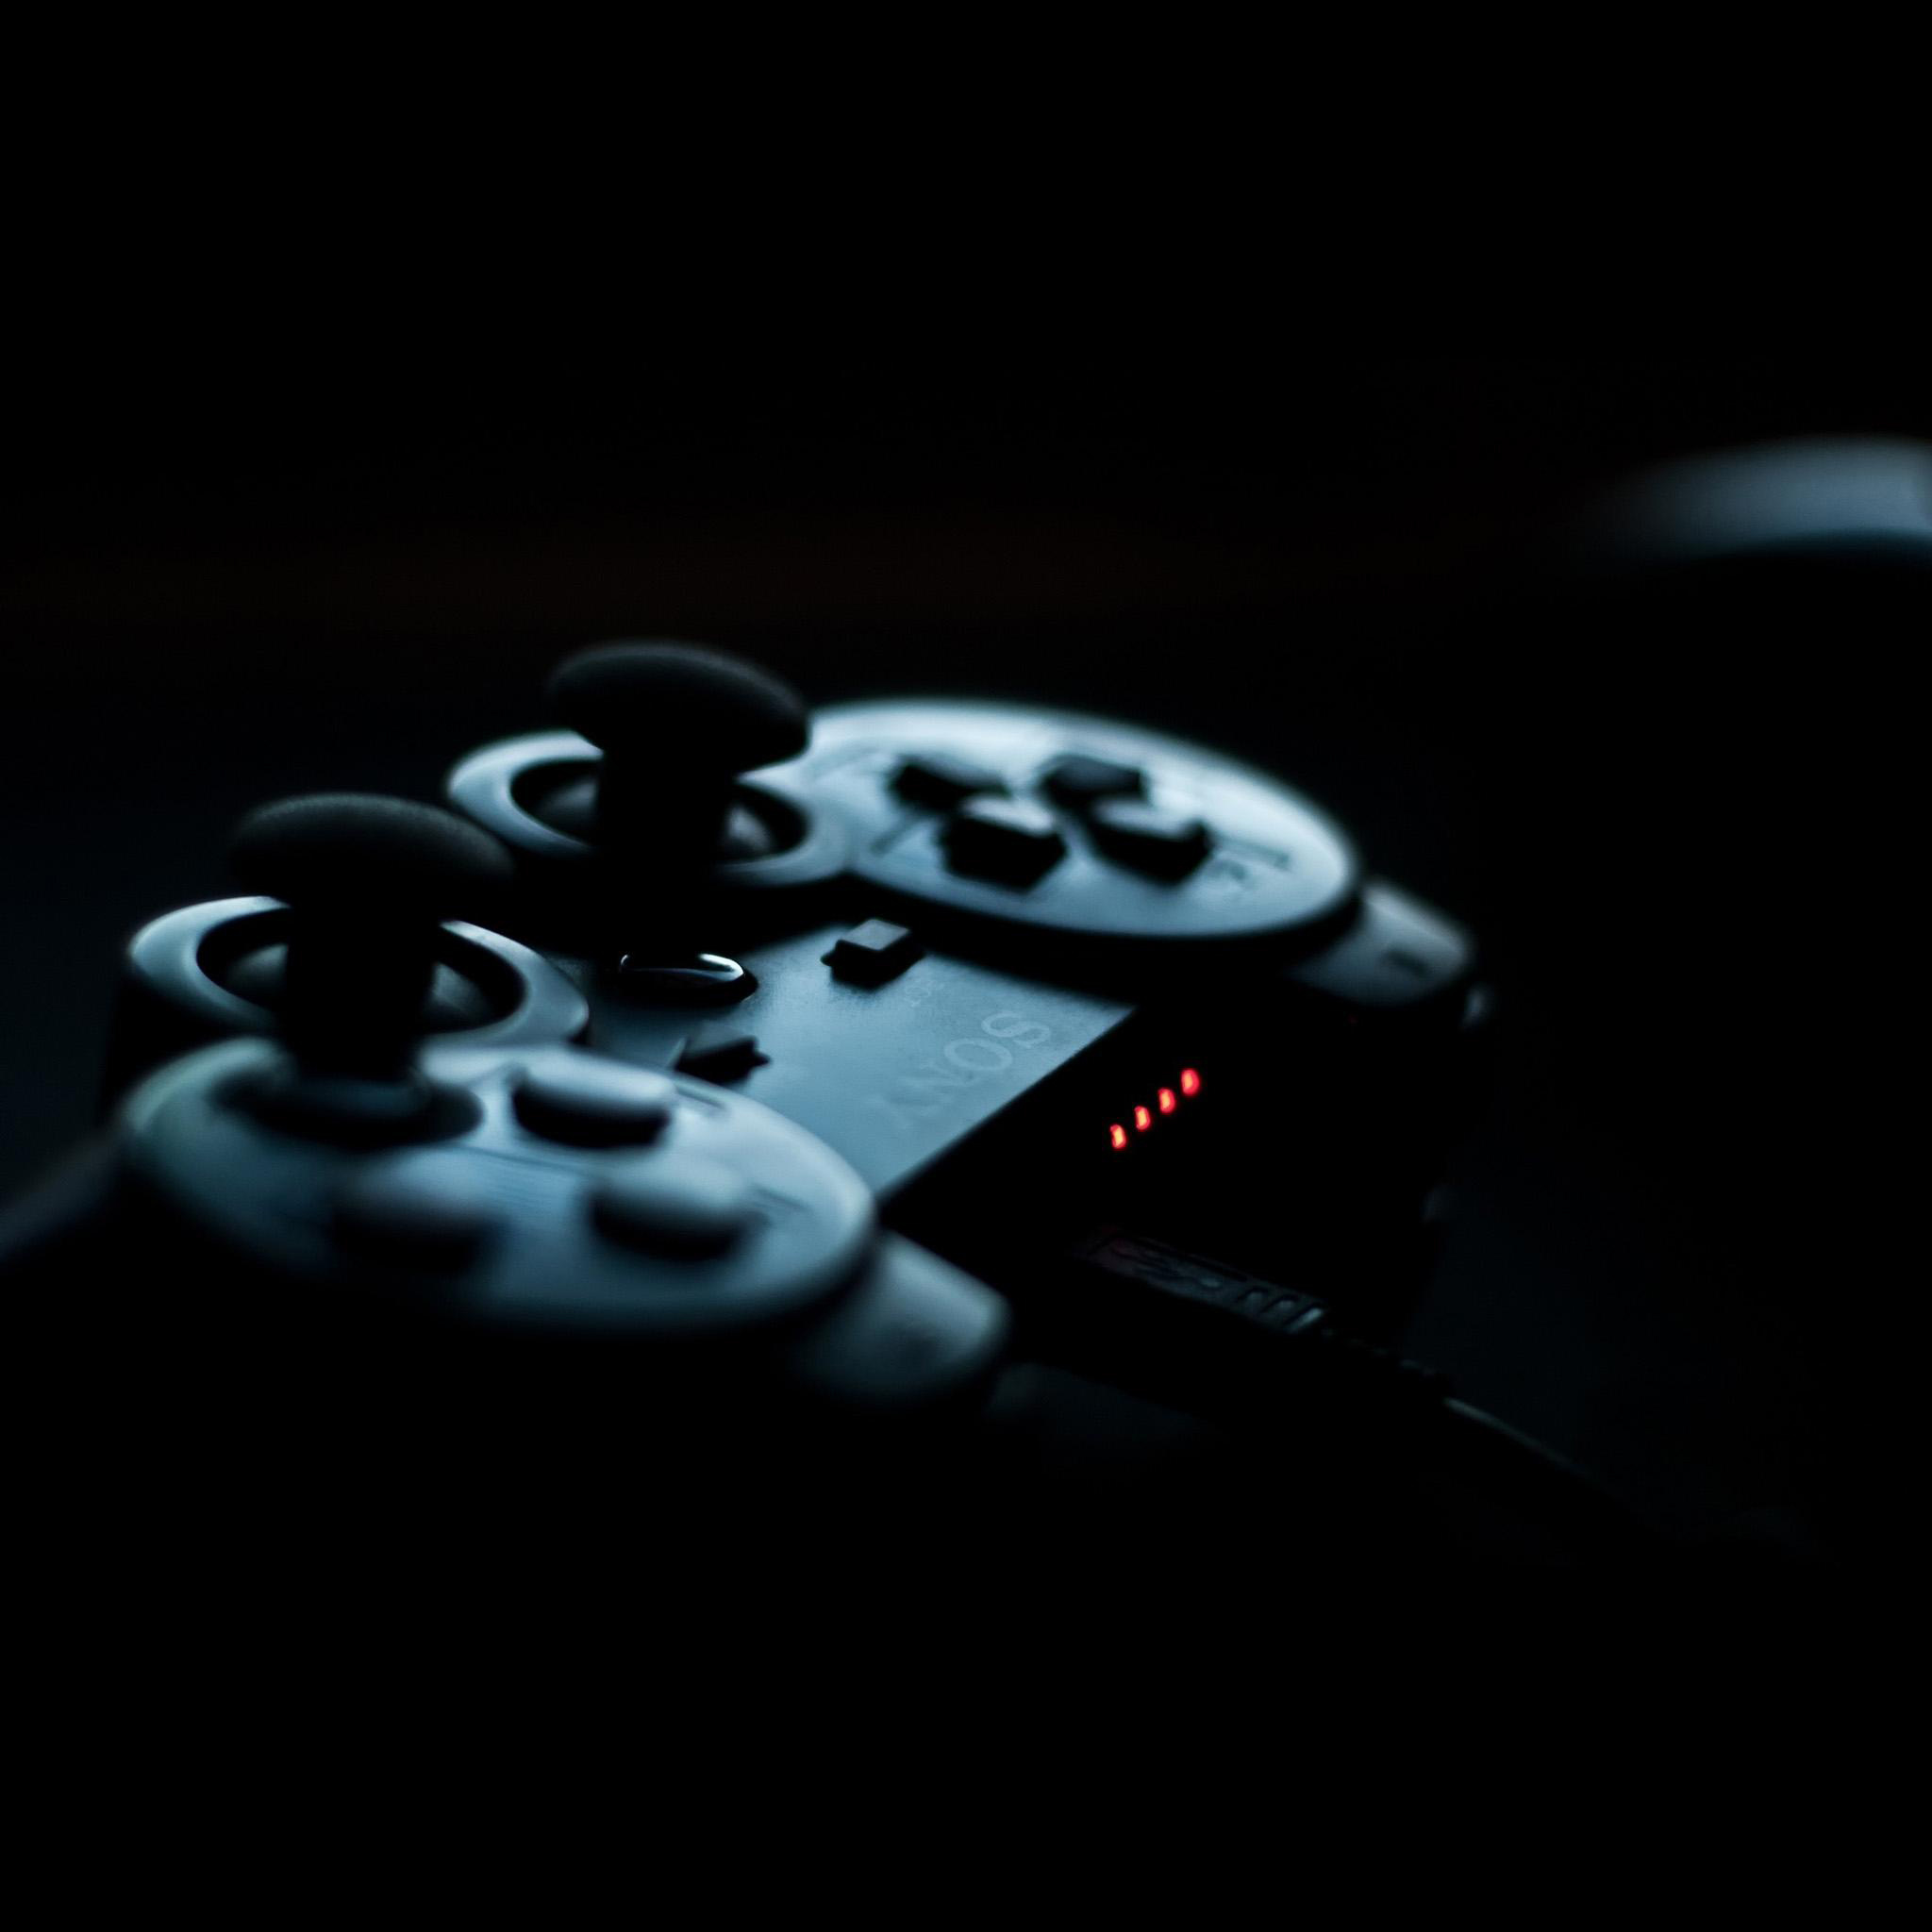 Joystick Sony Playstation 3Wallpapers iPad Retina Joystick Sony Playstation   iPad Retina